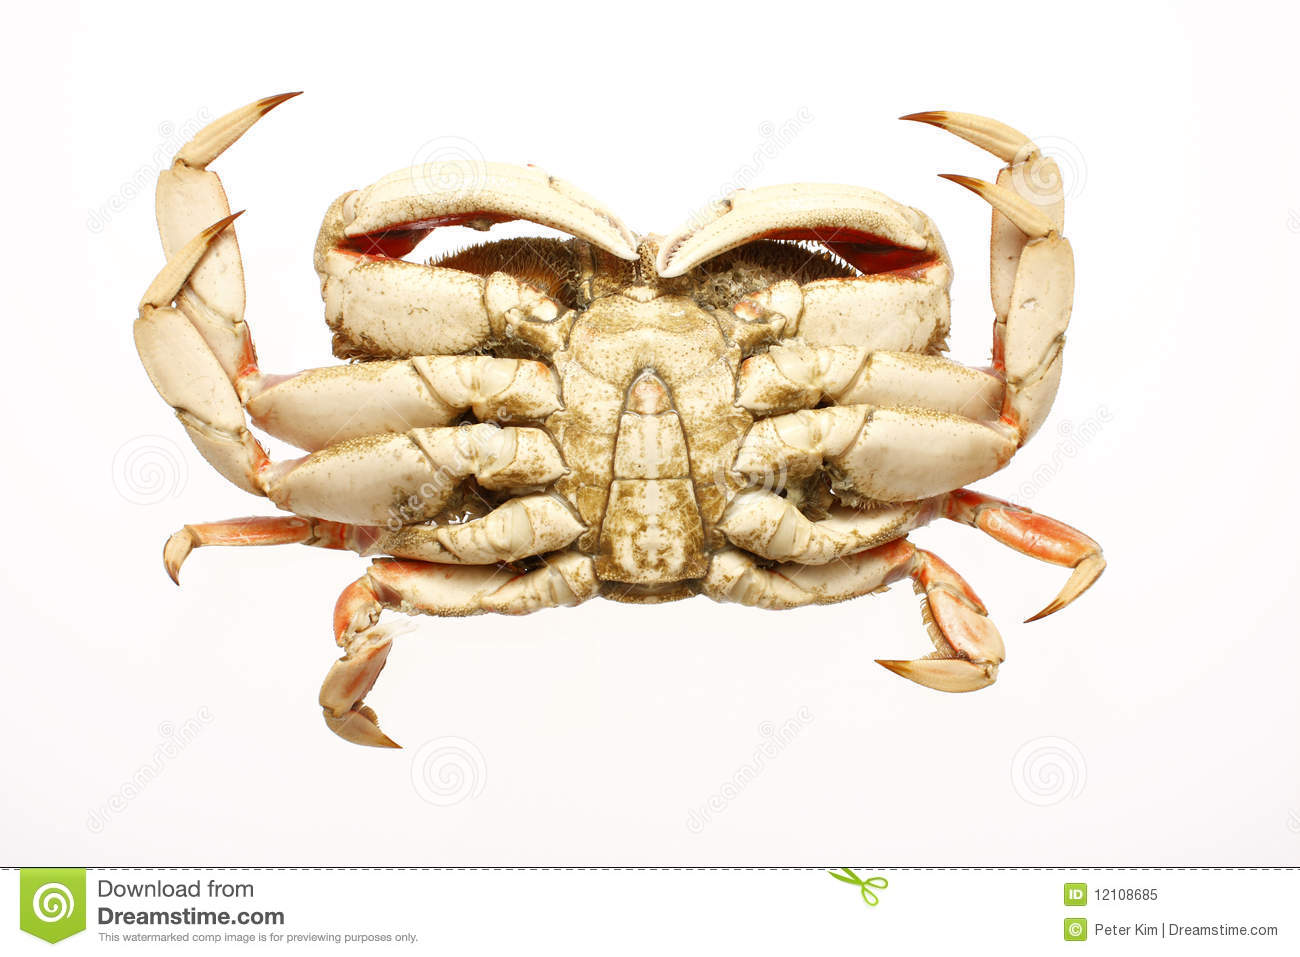 how to clean a cooked dungeness crab